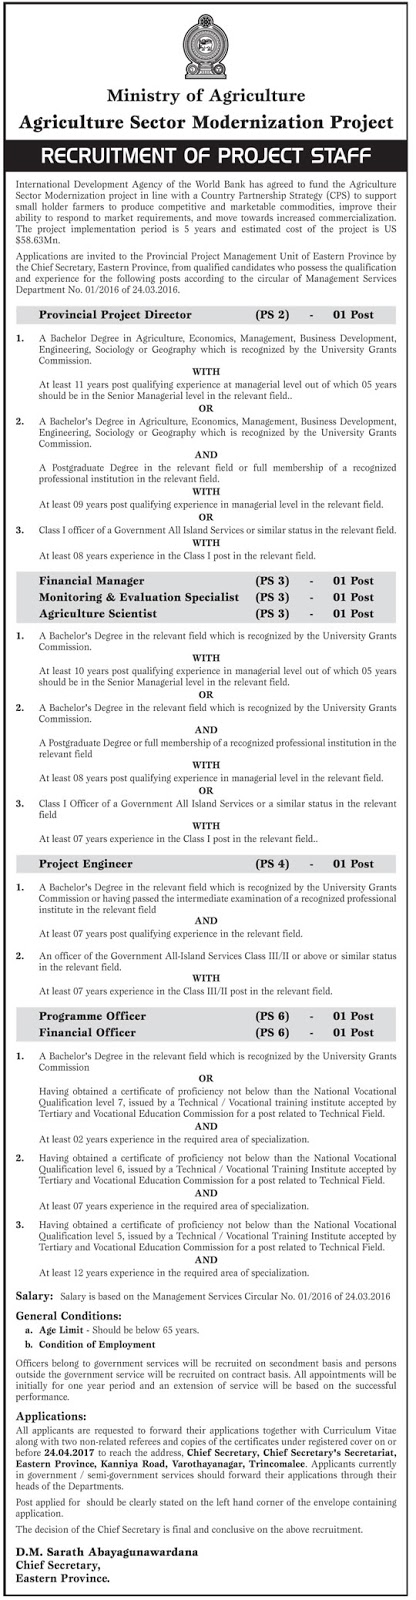 Sri Lankan Government Job Vacancies At Ministry Of Agriculture For